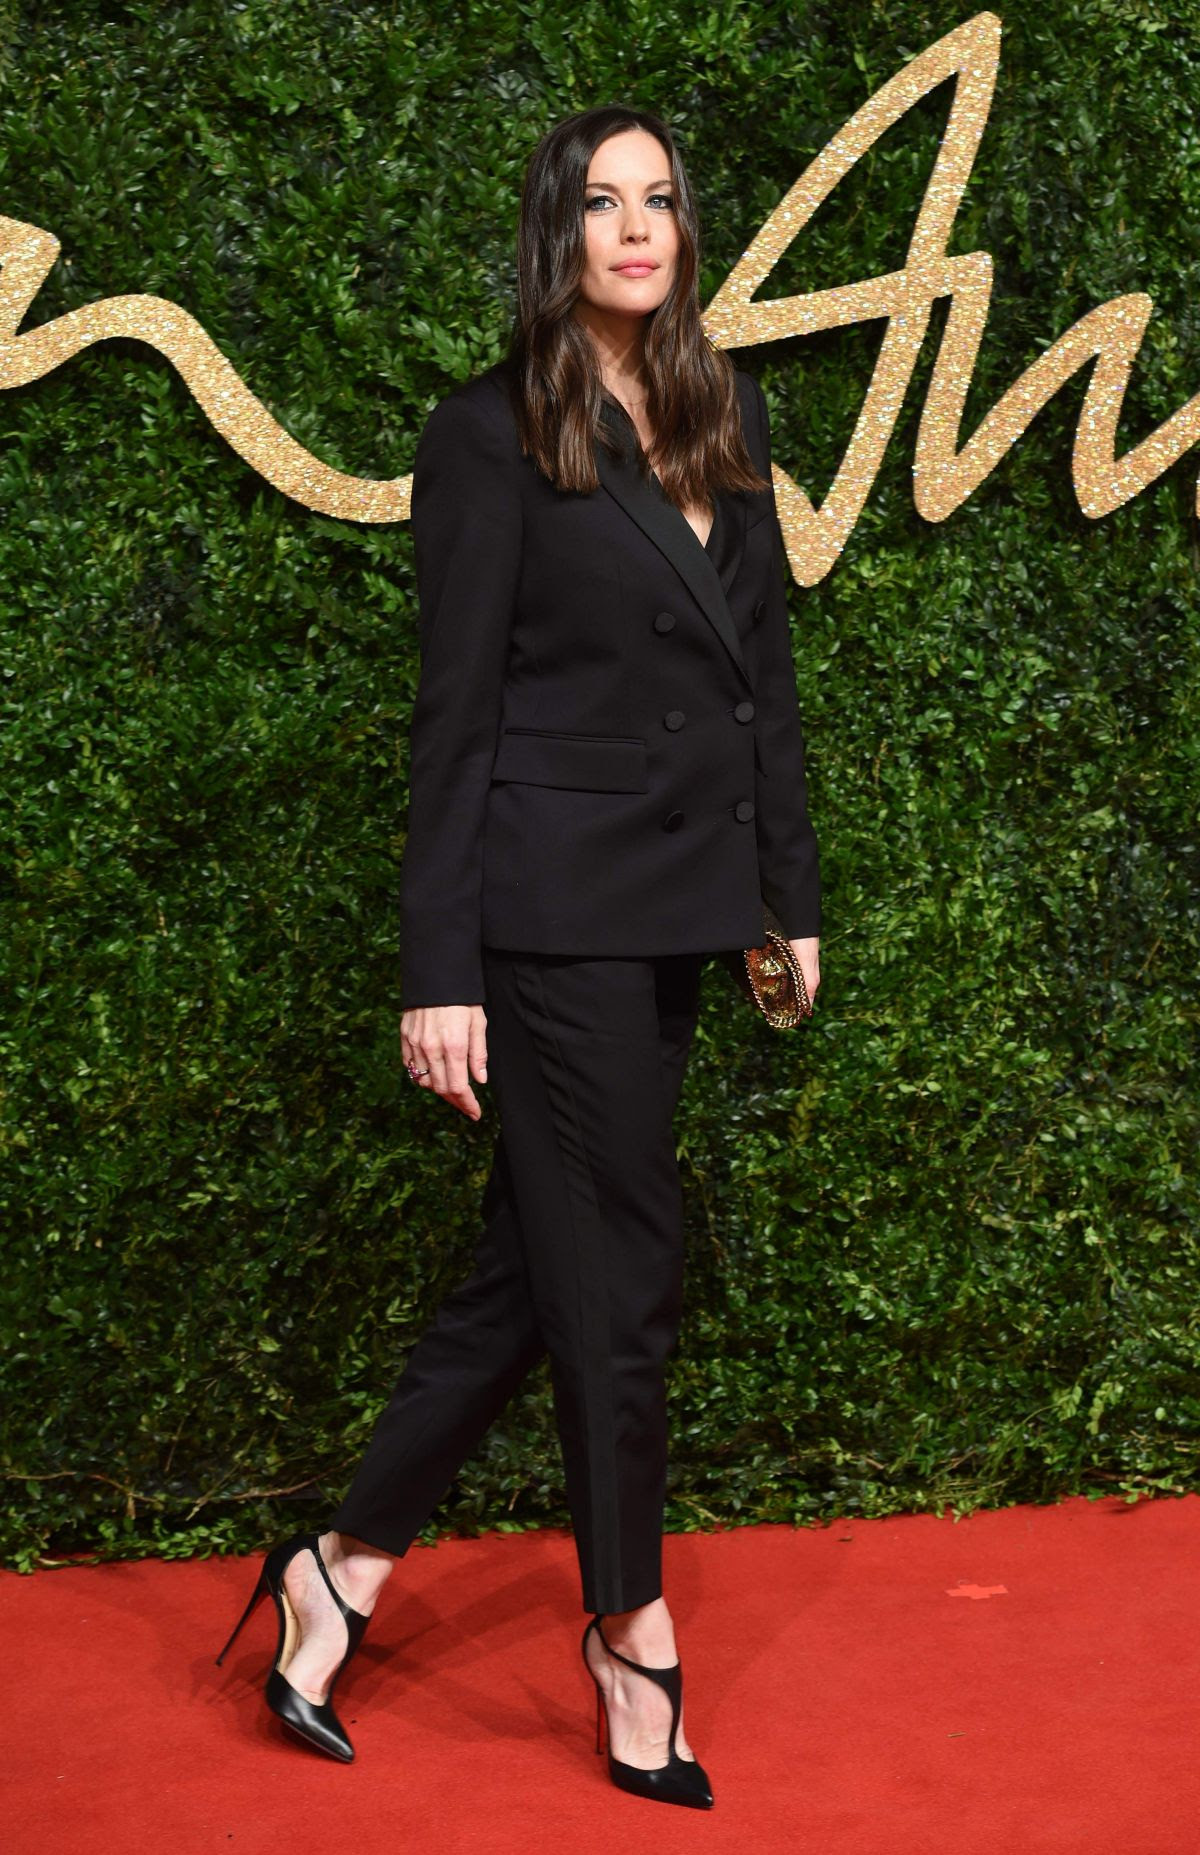 http://www.hawtcelebs.com/wp-content/uploads/2015/11/liv-tyler-at-2015-british-fashion-awards-in-london-11-23-2015_1.jpg